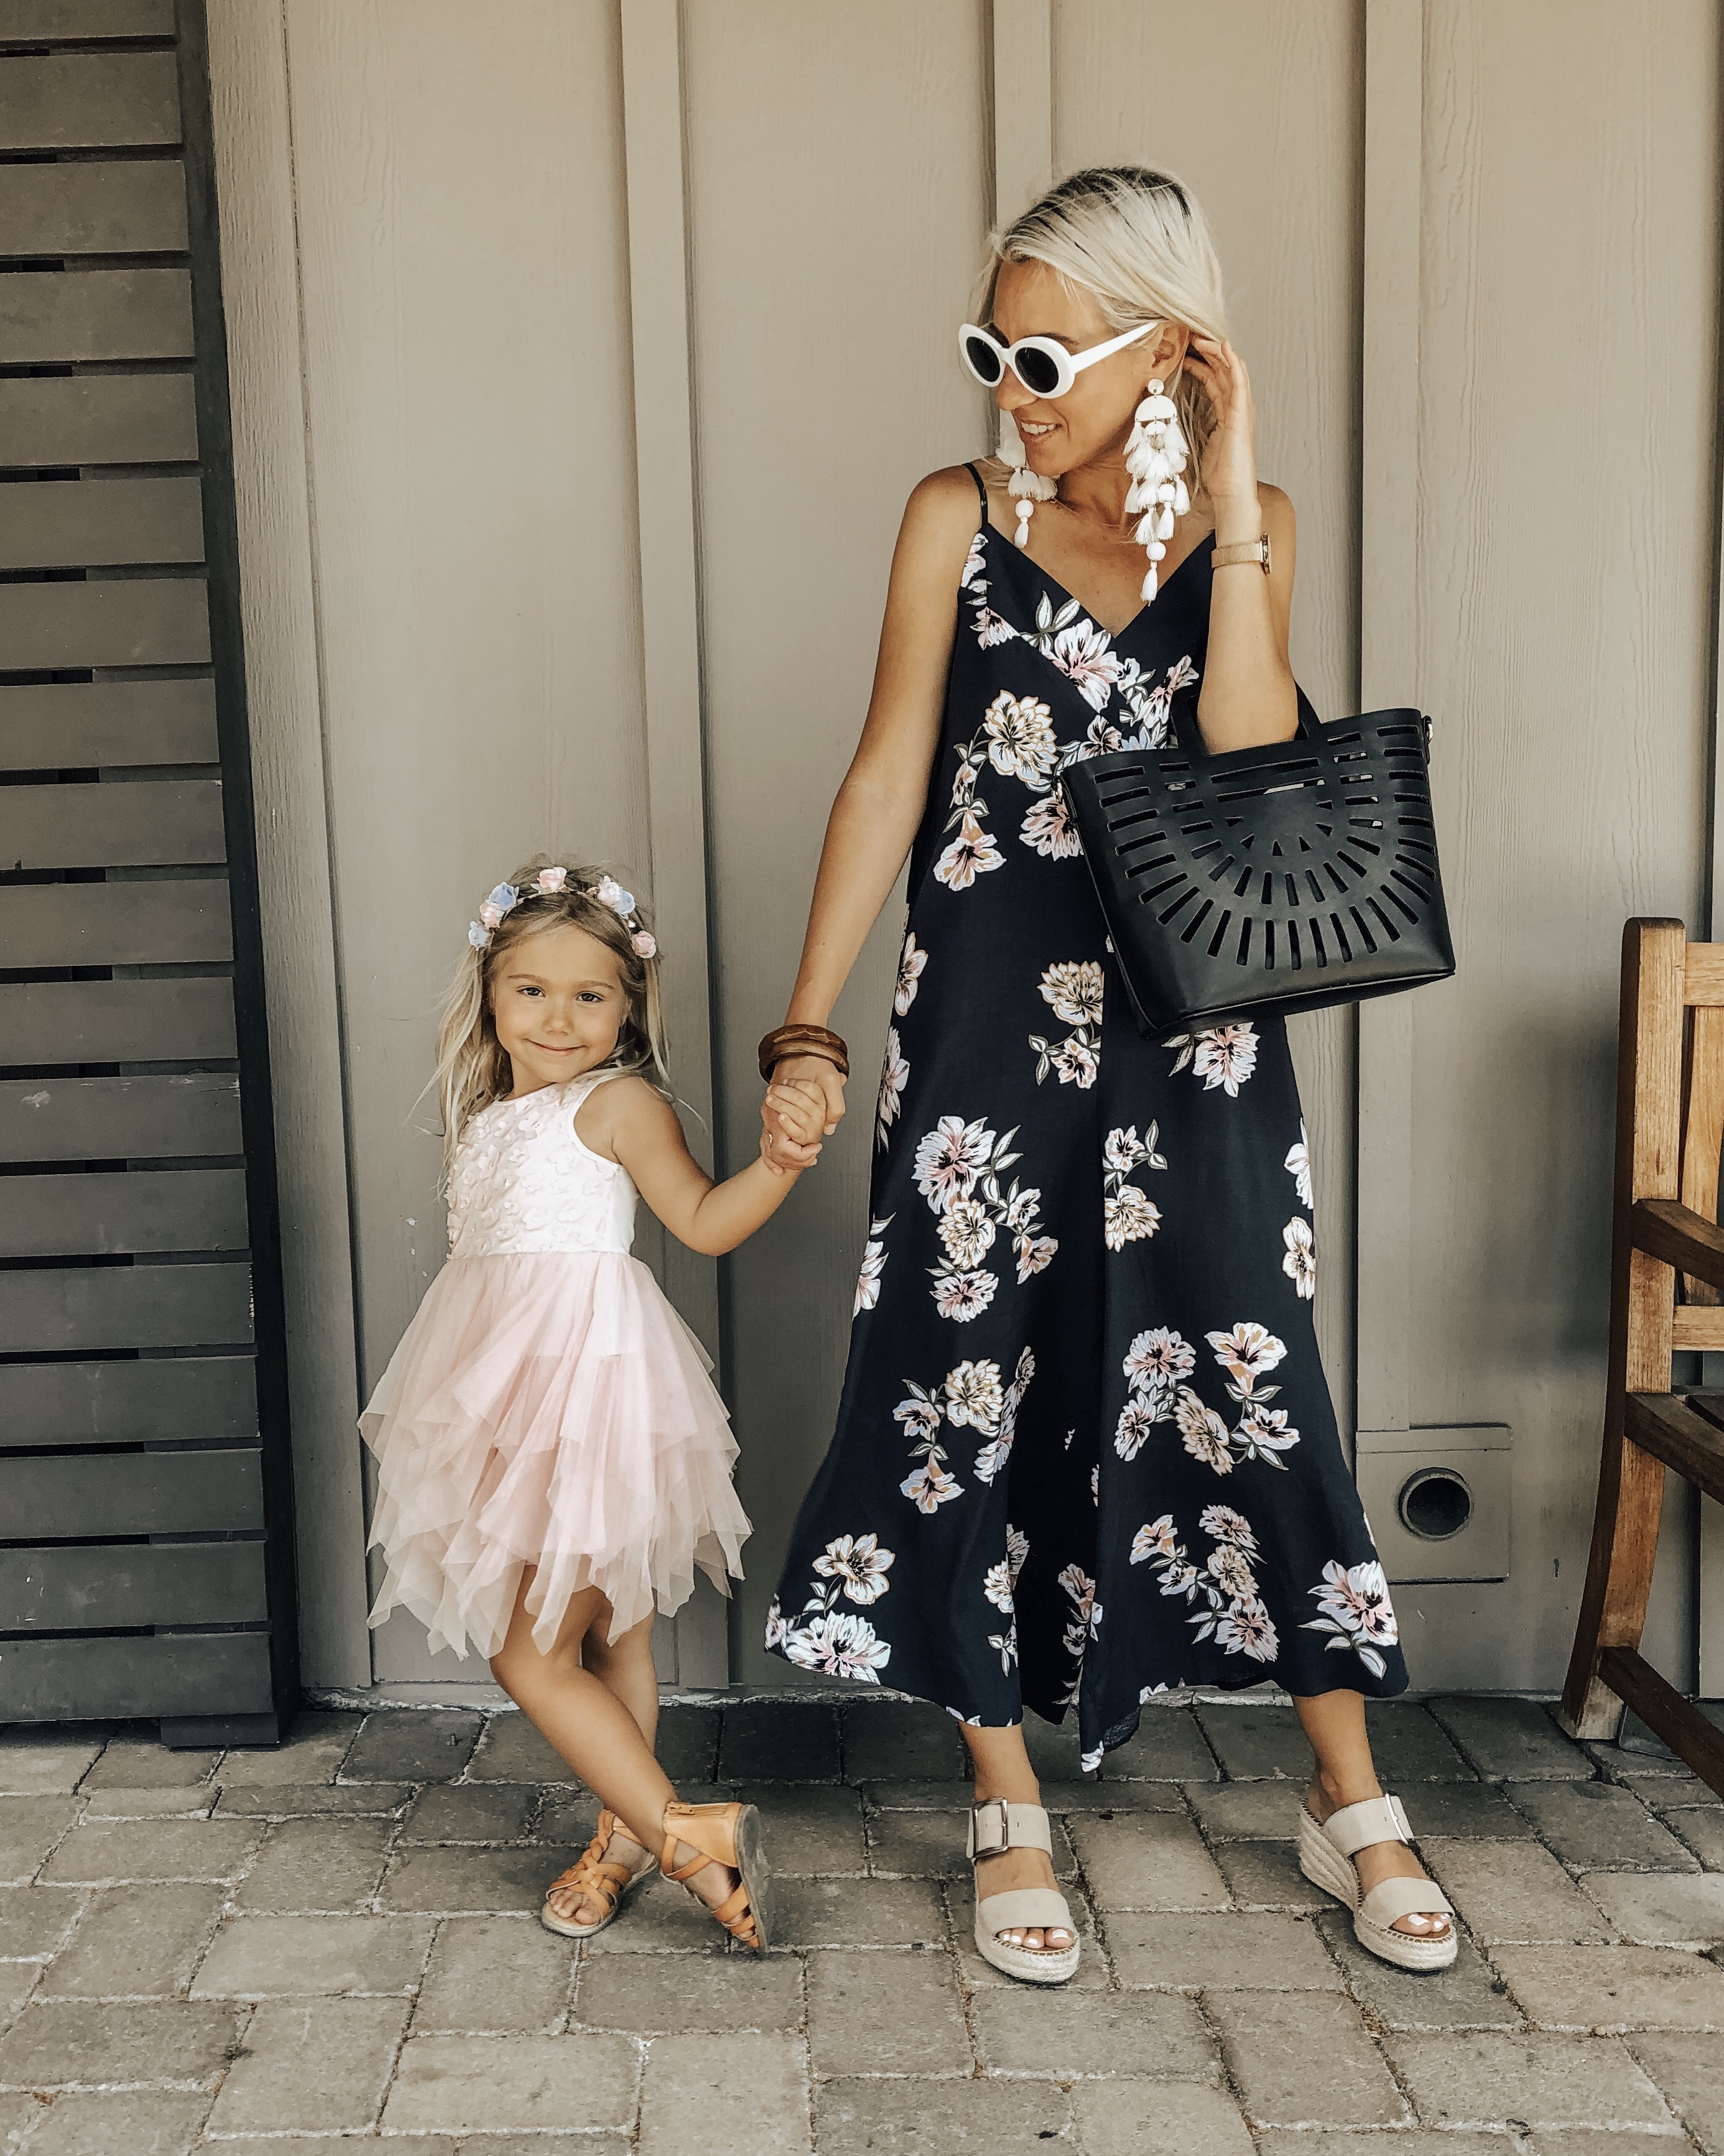 NEW SPRING DRESSES + JUMPSUITS FROM TARGET - Jaclyn De Leon Style + Looking for the perfect Spring dress at an affordable price? I'm sharing my top picks from pretty florals to retro stripes and they're all from Target.